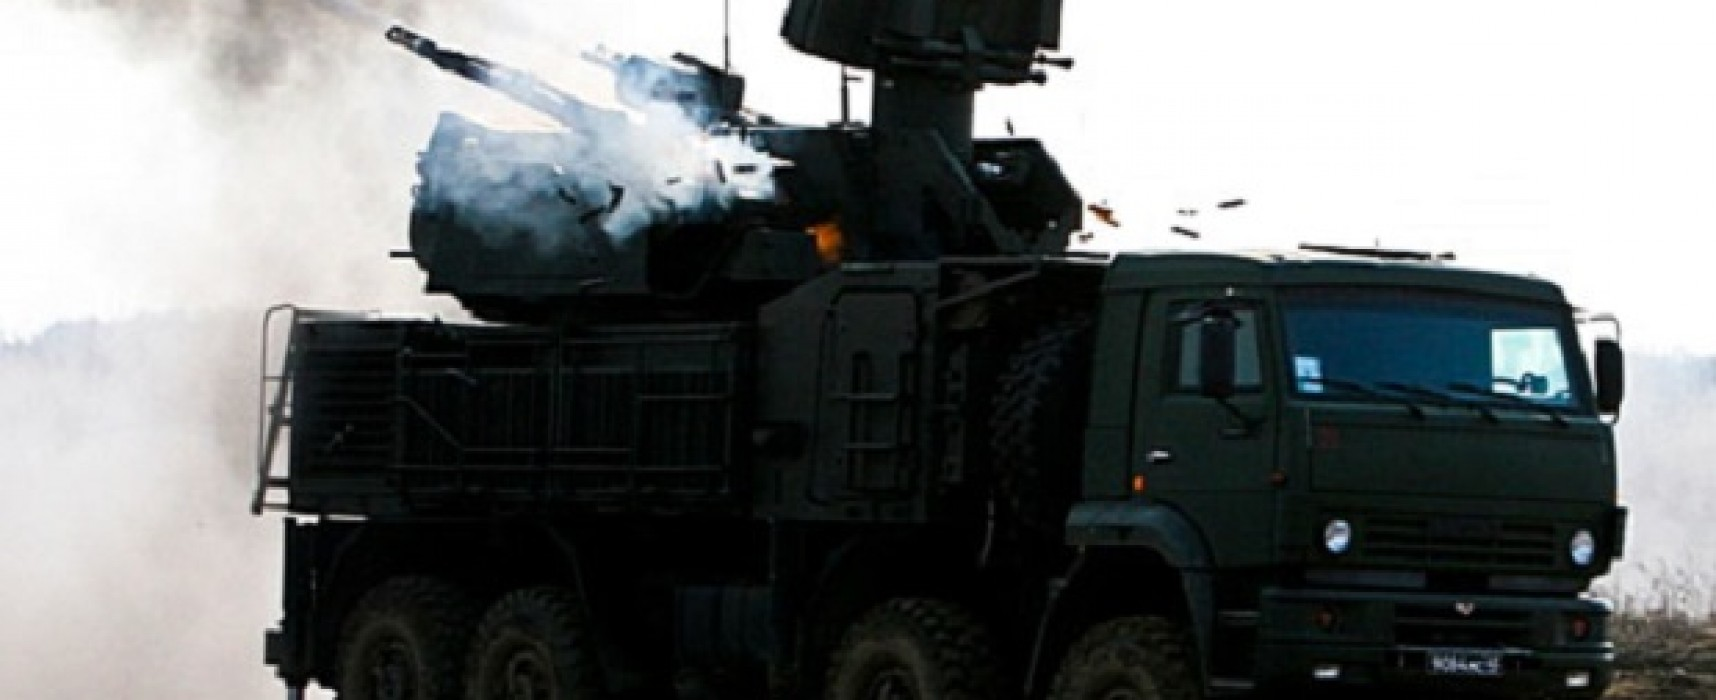 London publishes photos of Russian Pantsir-S1 systems in Ukraine